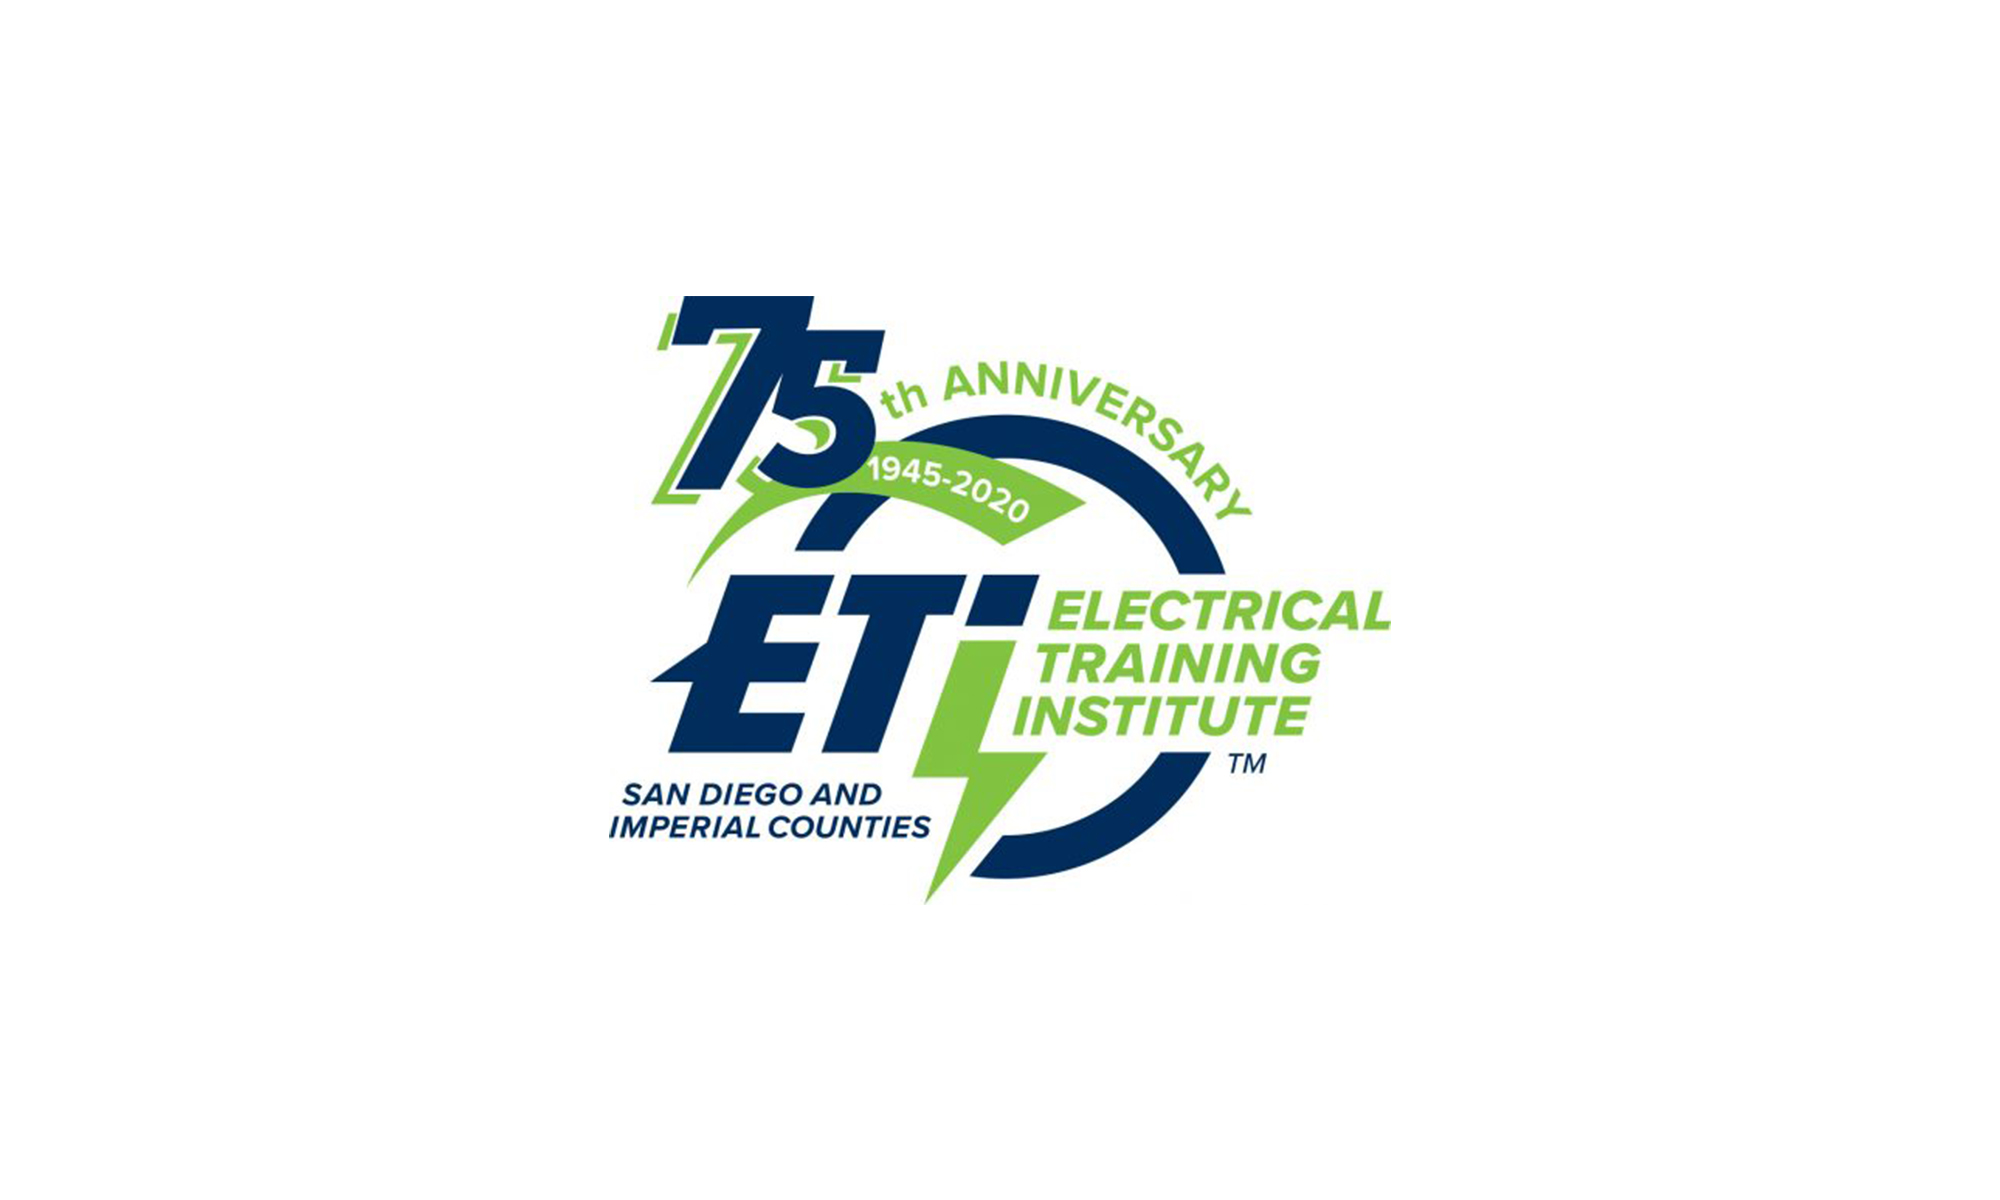 electrical-training-institute-75th-anniversary